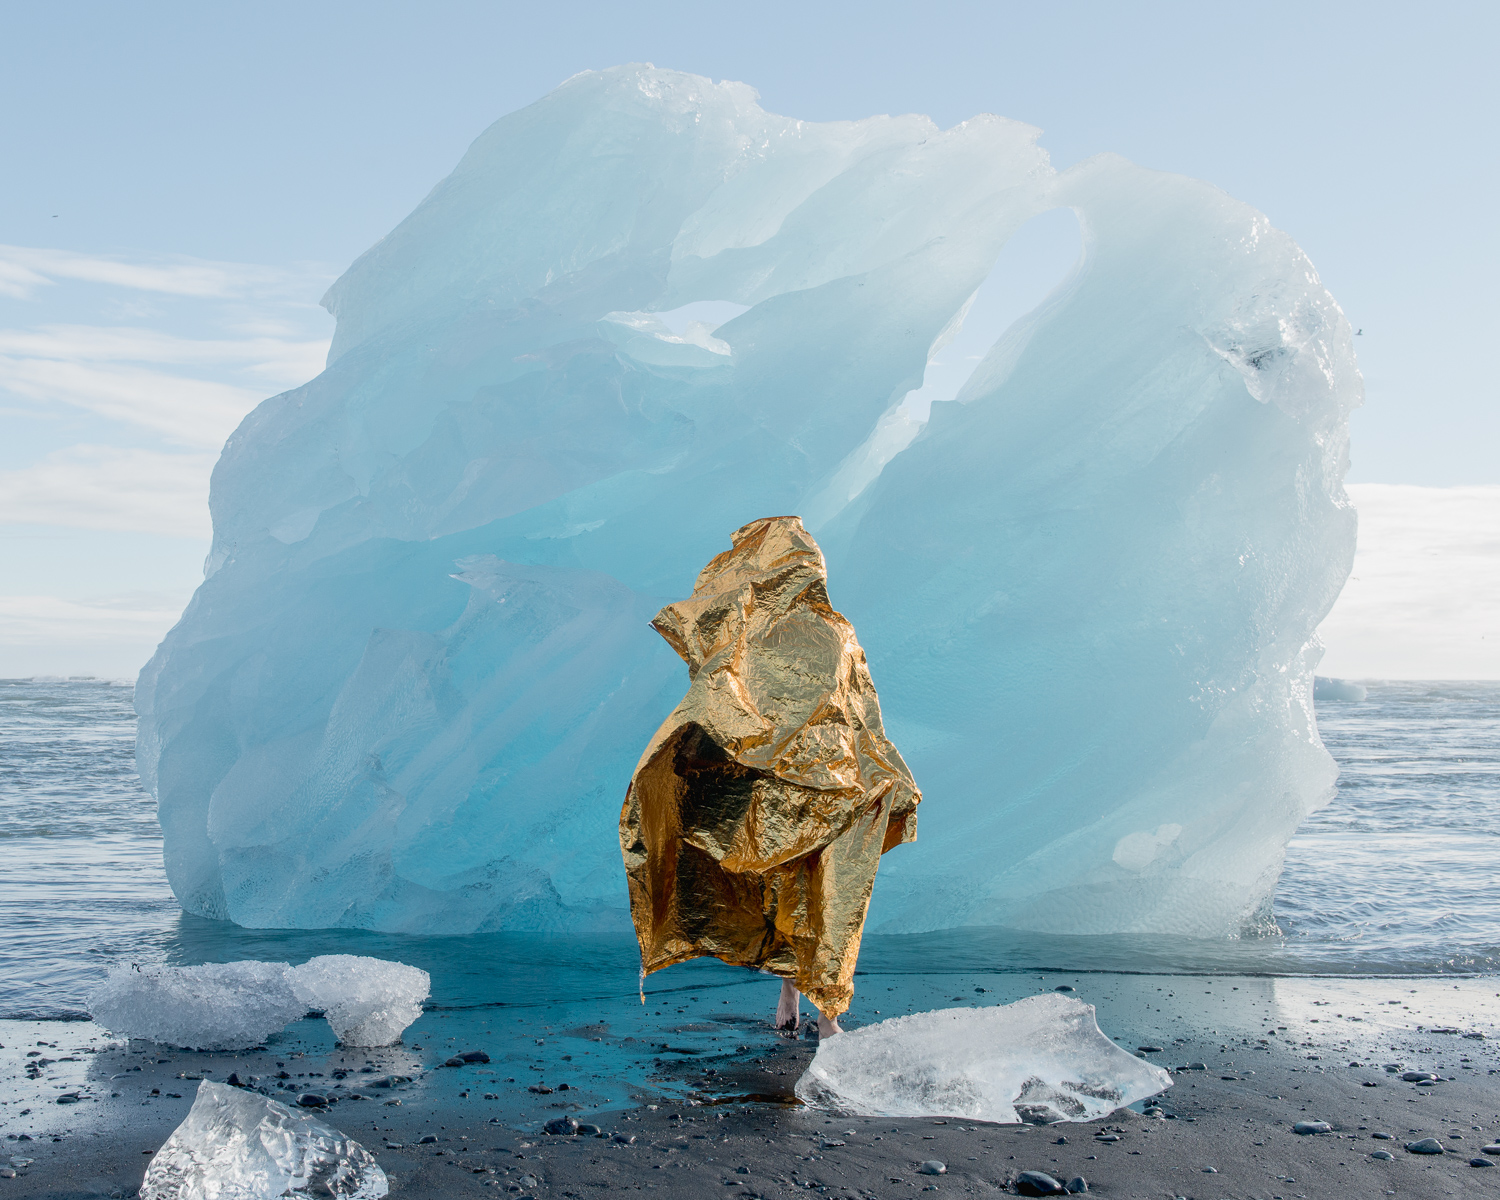 Abstract photography in Iceland Reflect by Zach Hyman Photography